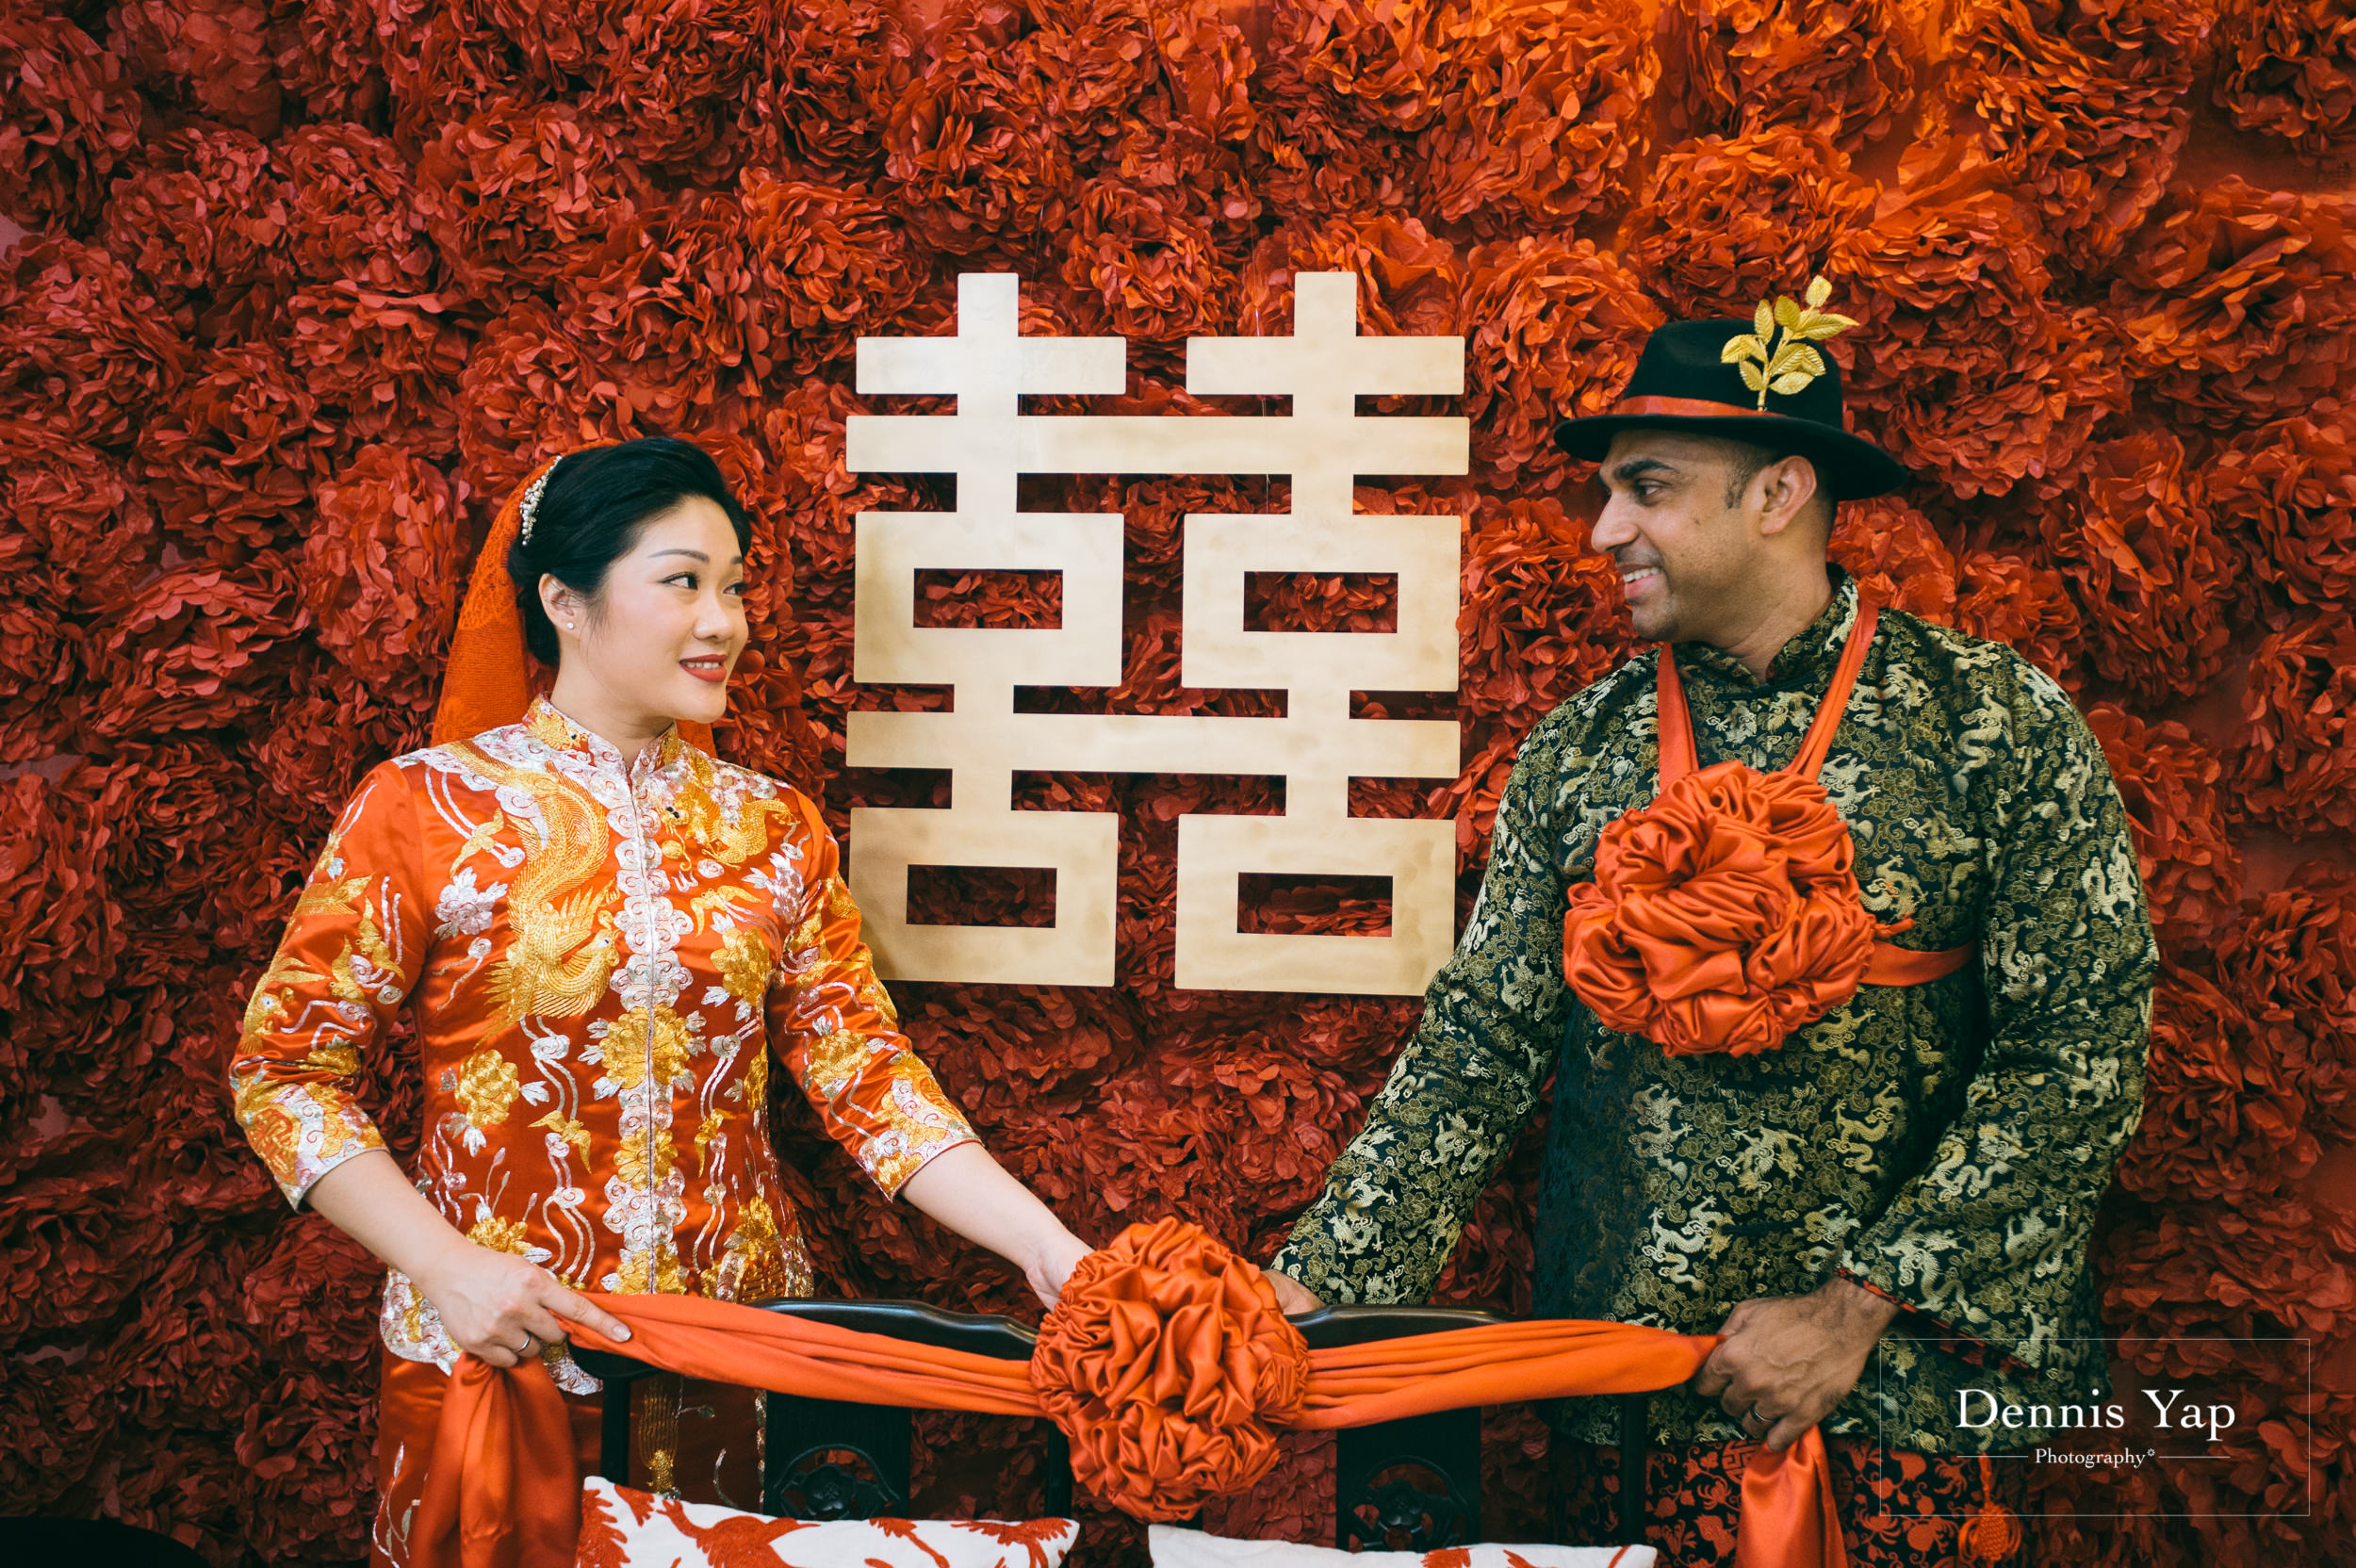 azmi zahraa wedding day gate crash traditional chinese and malay wedding dennis yap malaysia photographer-16.jpg